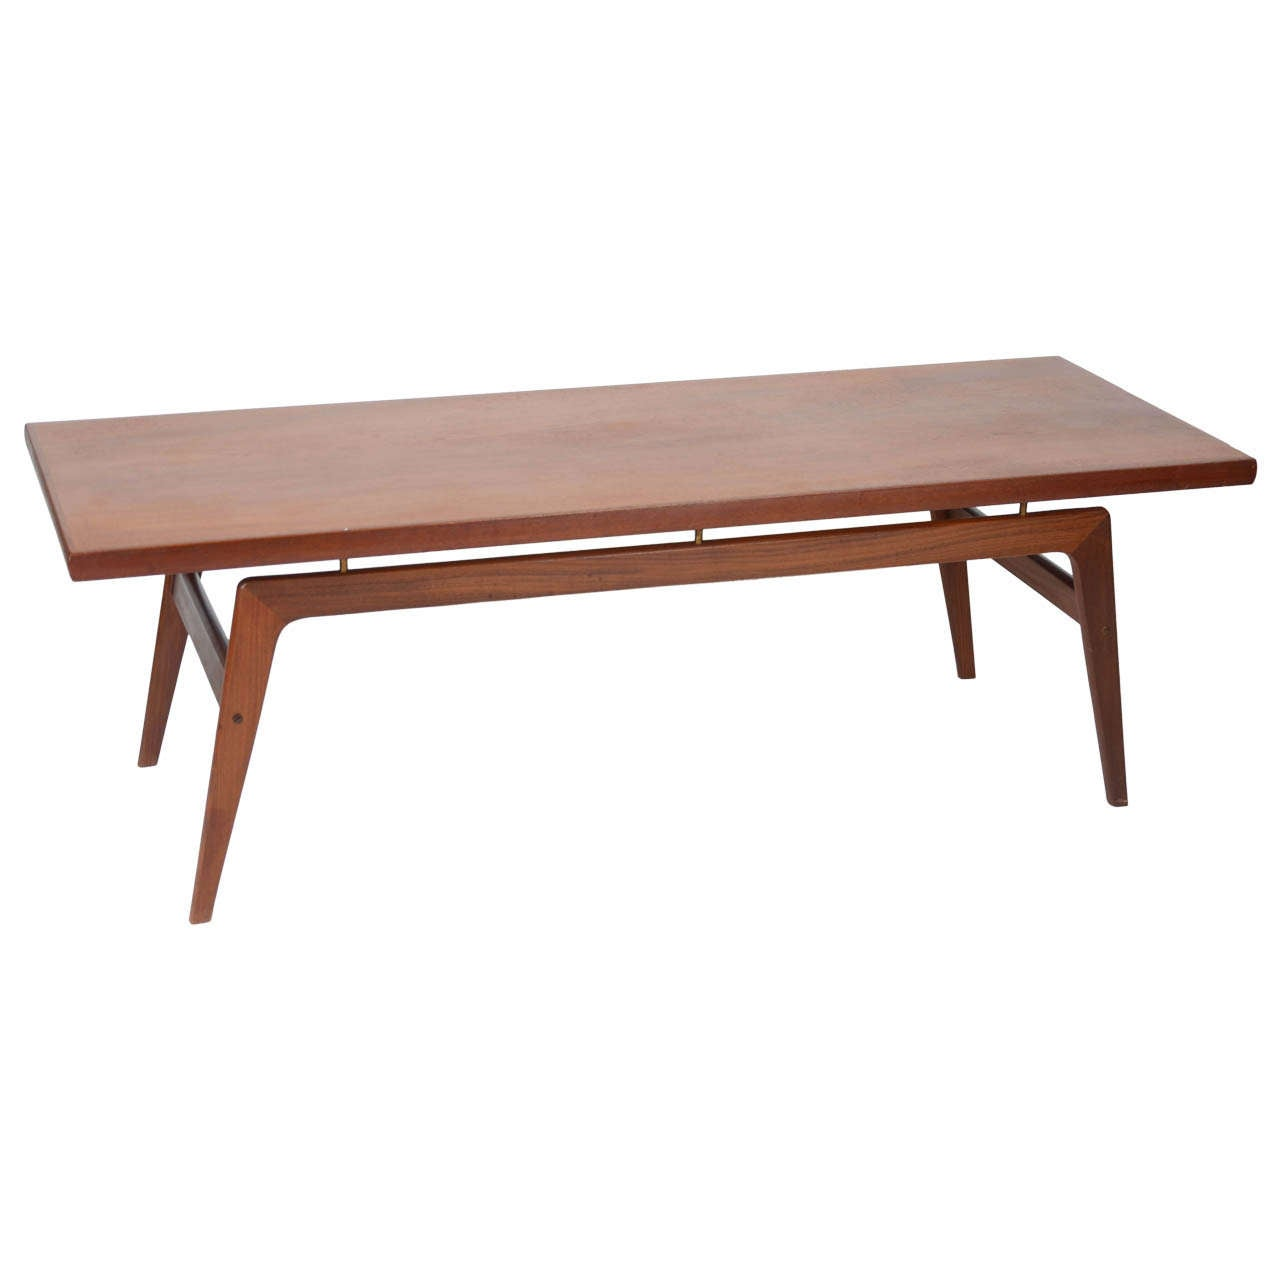 Danish Teak Coffee Table At 1stdibs